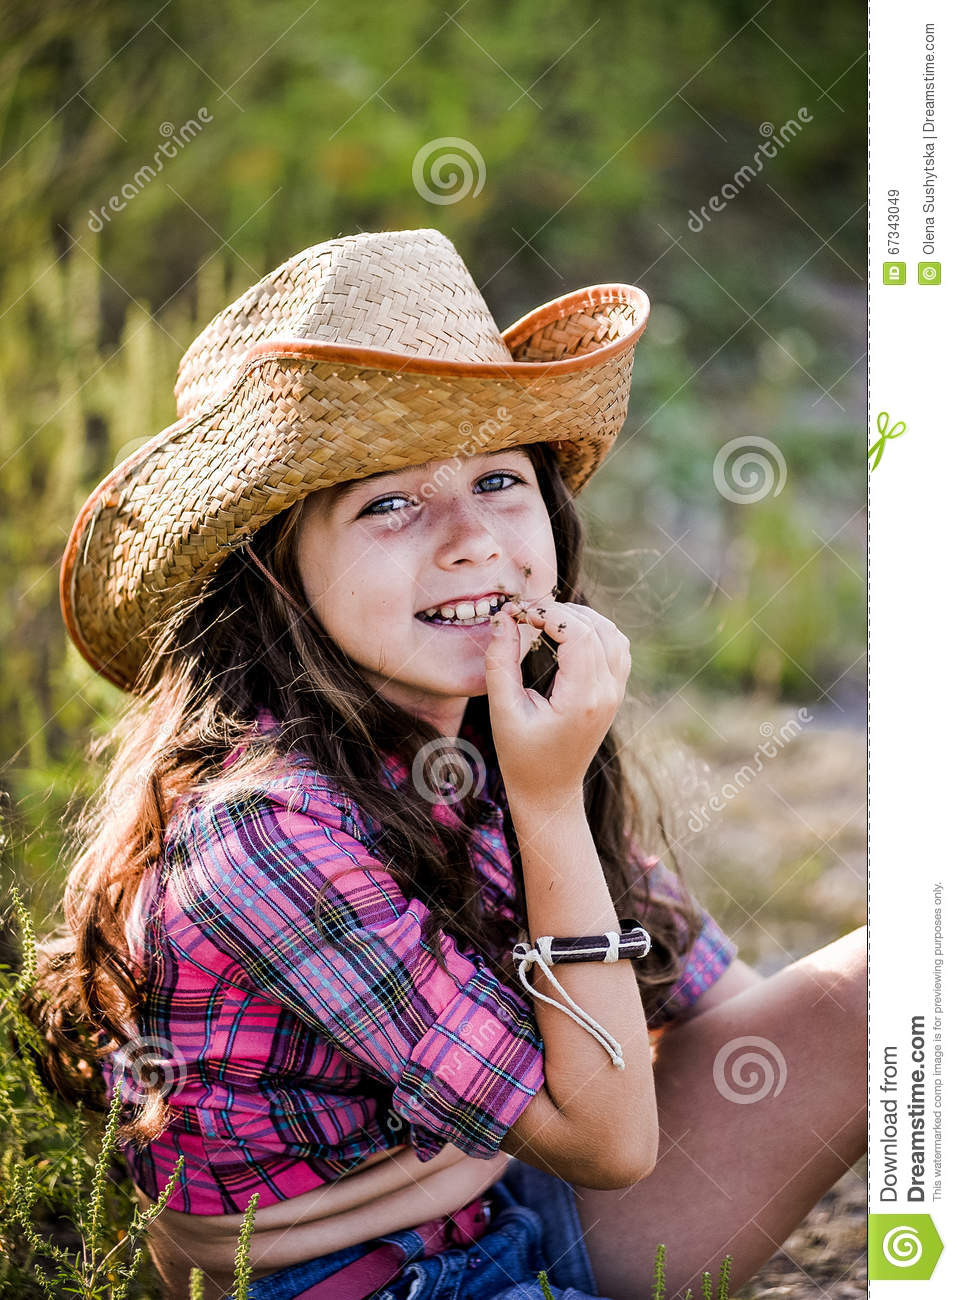 7f9af0704c567 Little Girl Sitting In A Field Wearing A Cowboy Hat Stock Image ...